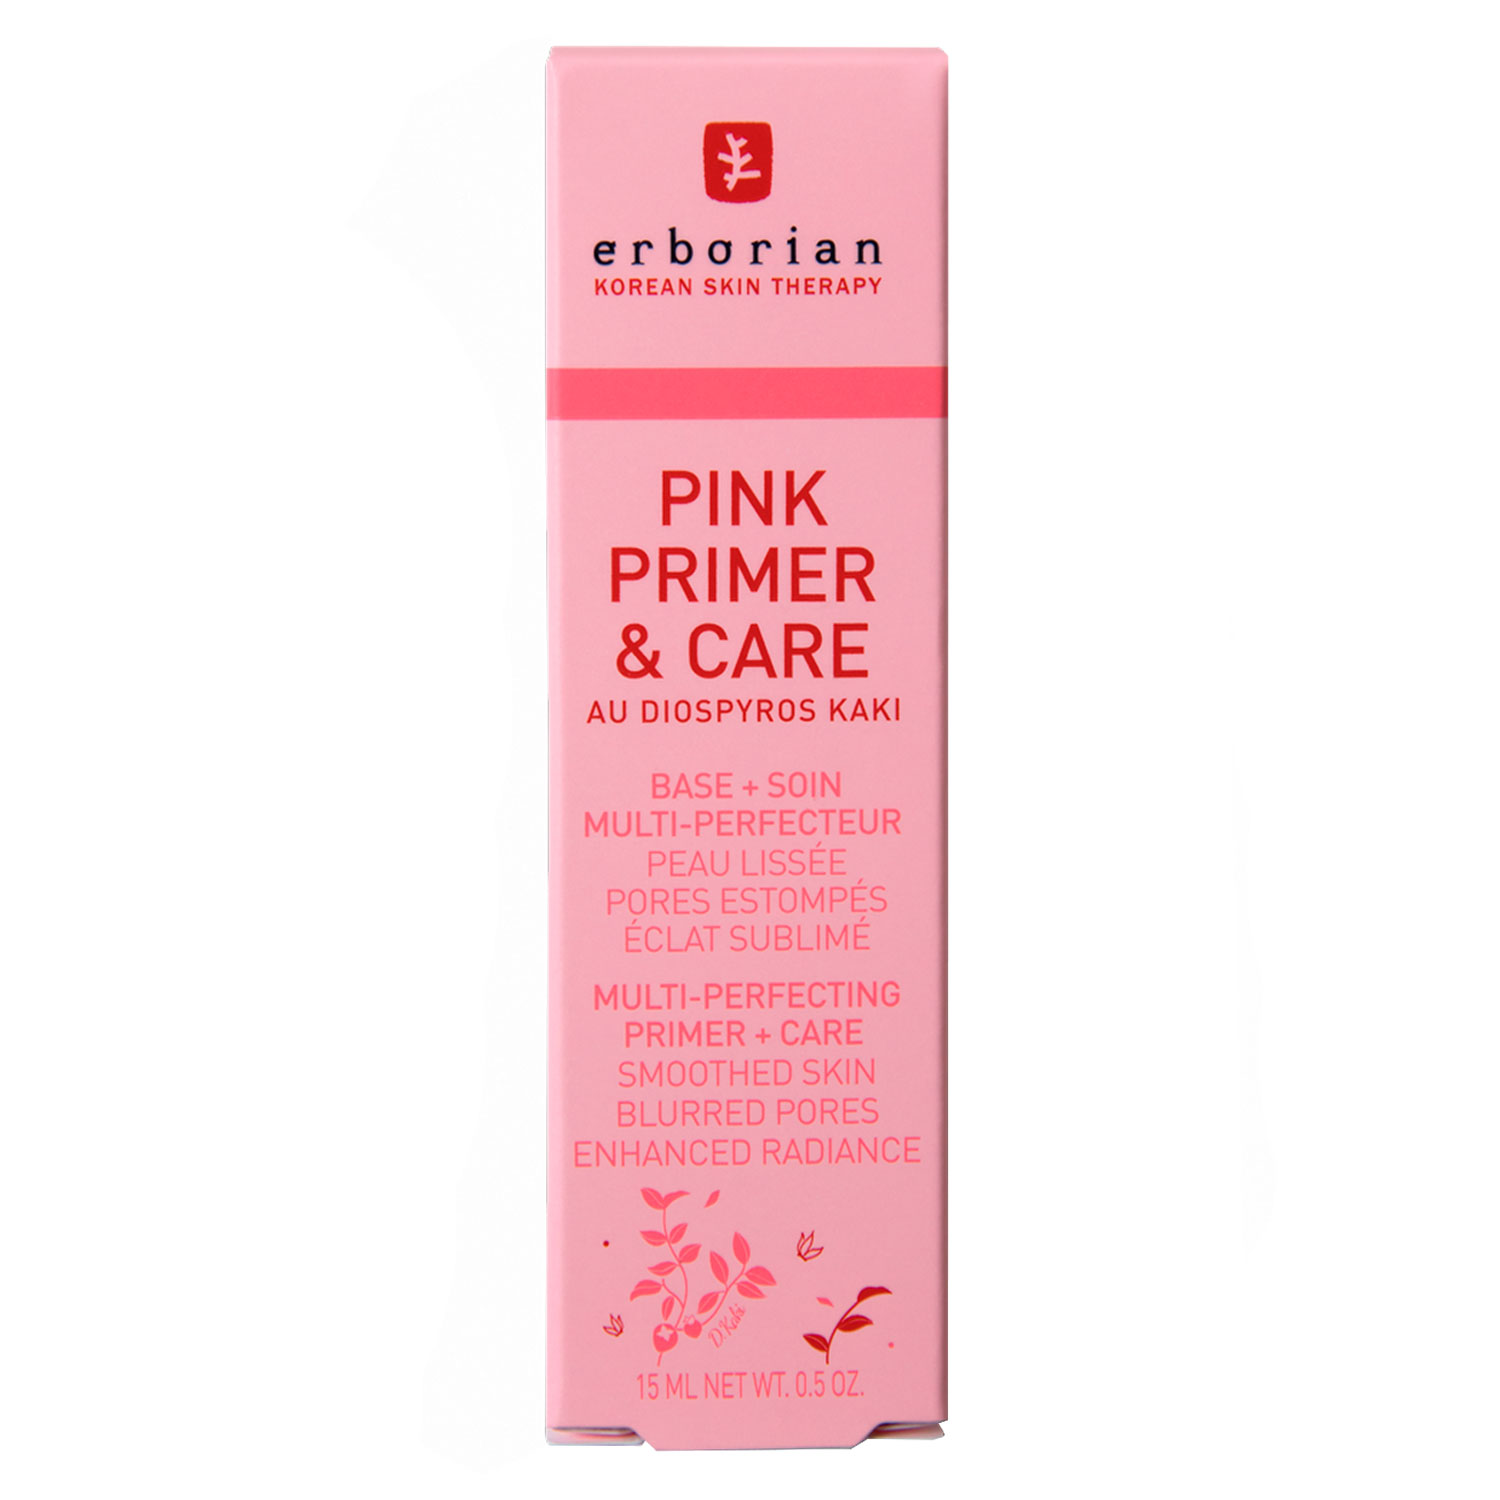 erborian Primers - Pink Primer & Care